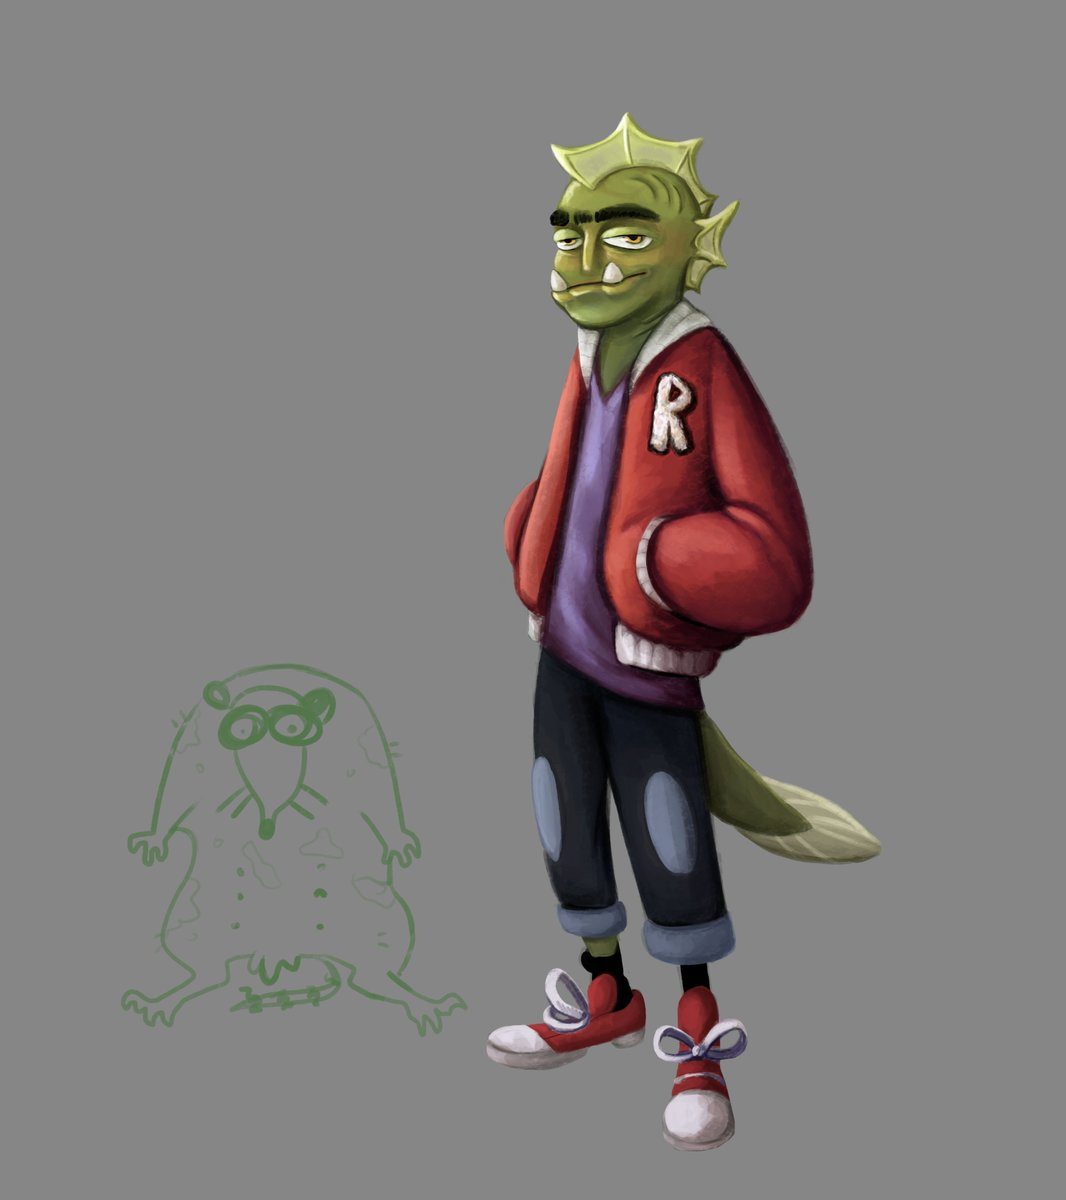 Some fish guy for one of @CainSparrow projects #illustration #drawing #art #digitalart #characterdesign